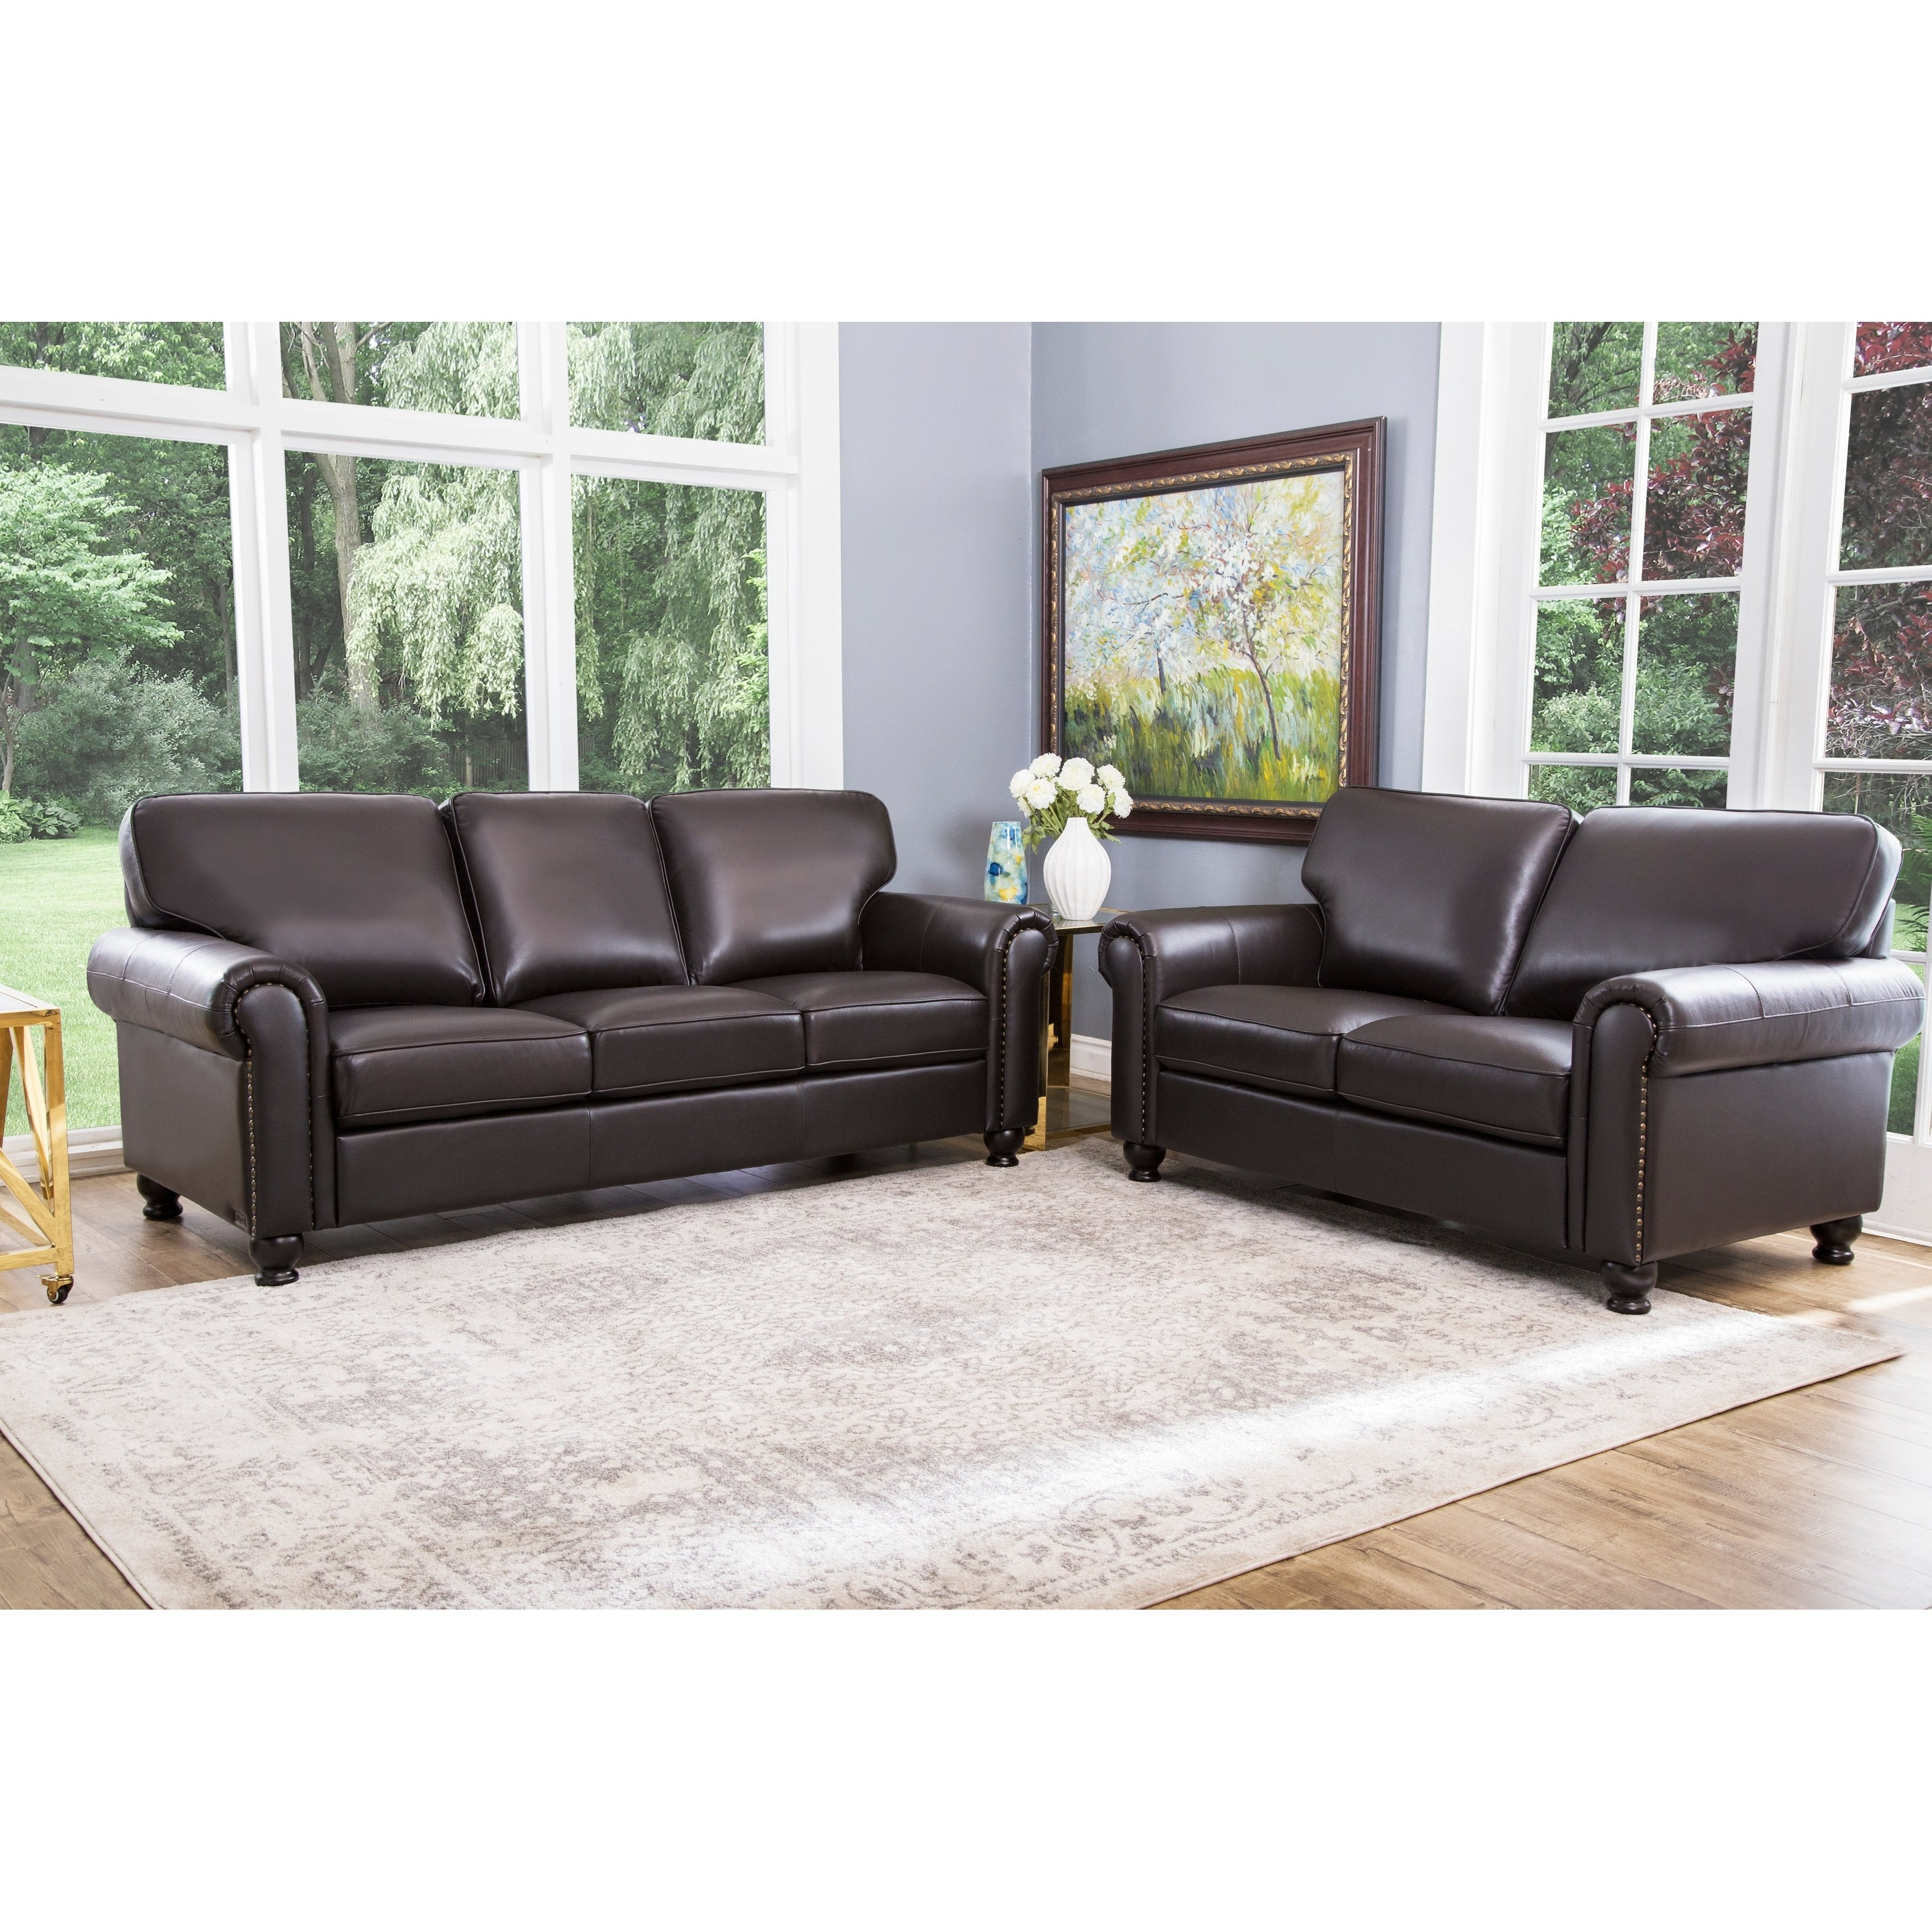 Shop Abson London Top Grain Leather 2 Piece Living Room Set Free throughout Living Room Set Deals